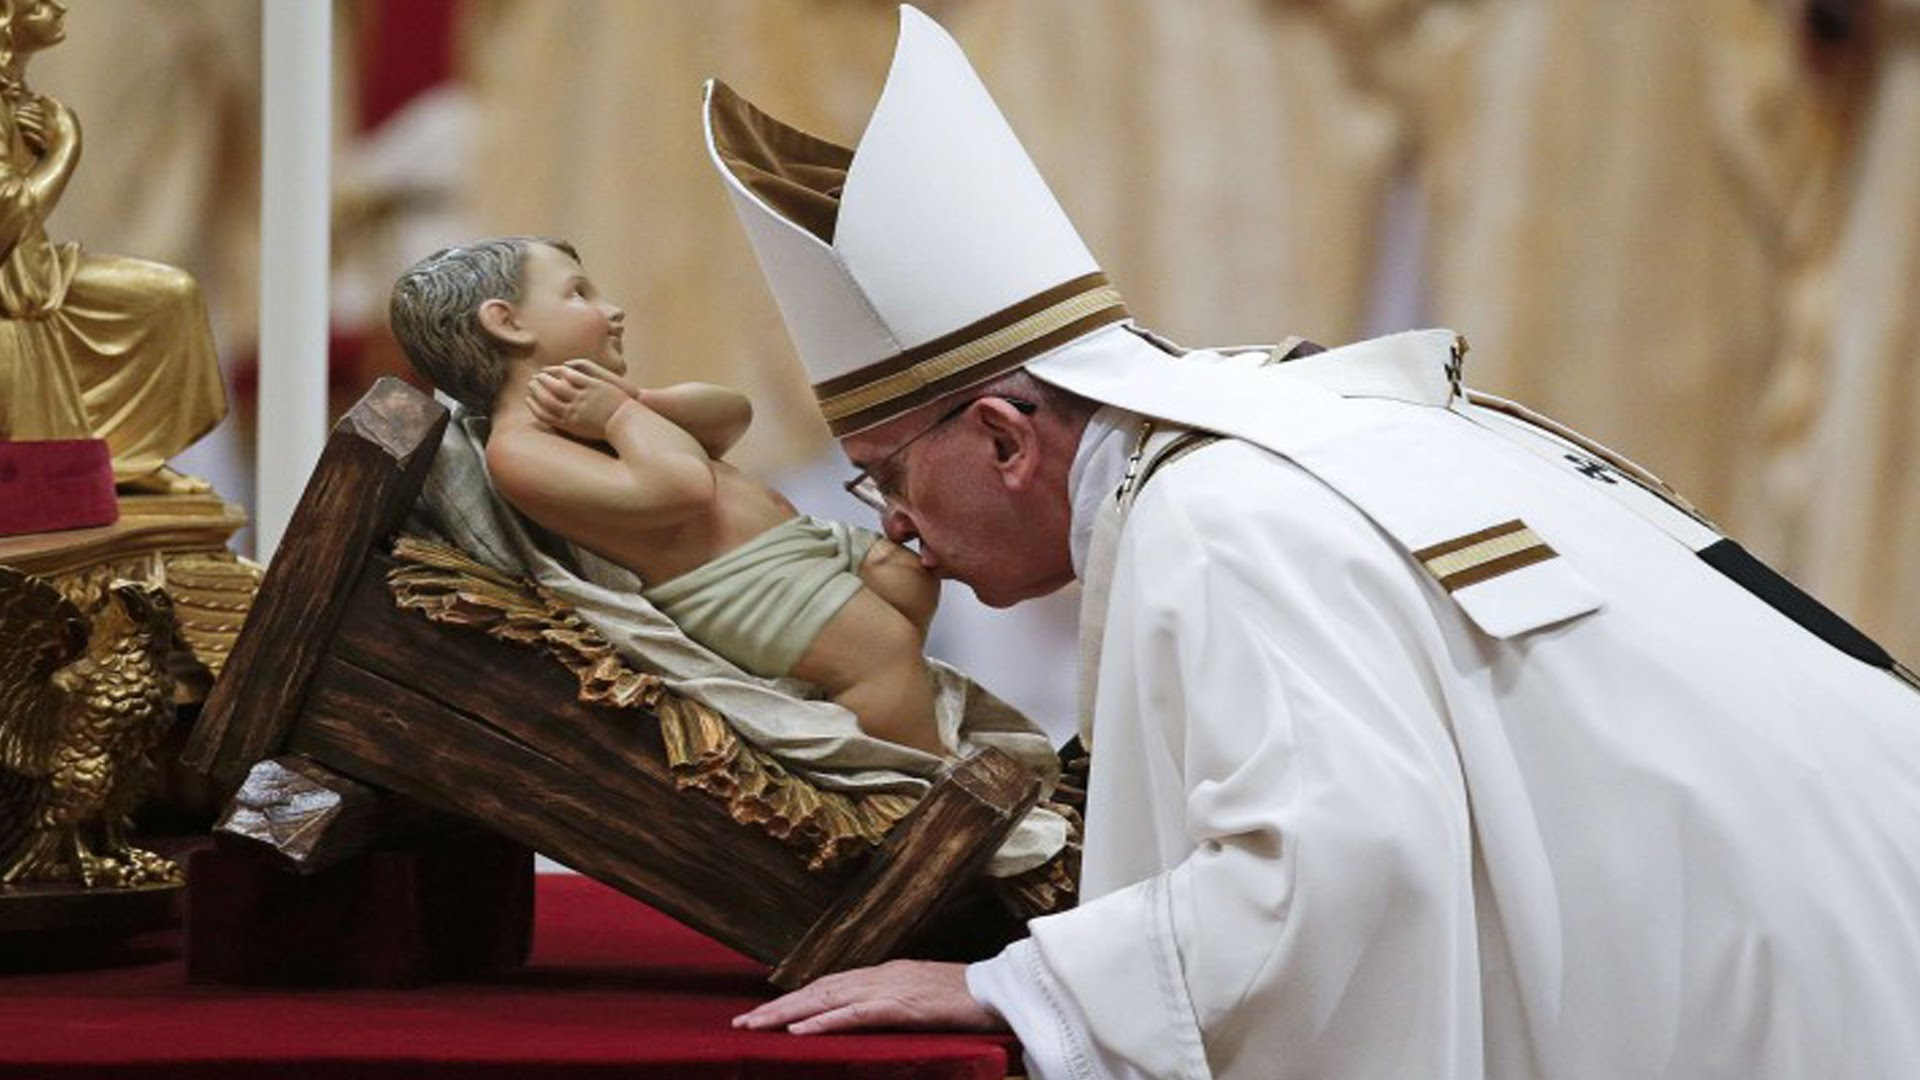 Secrets The Catholic Church doesn't want the world to know